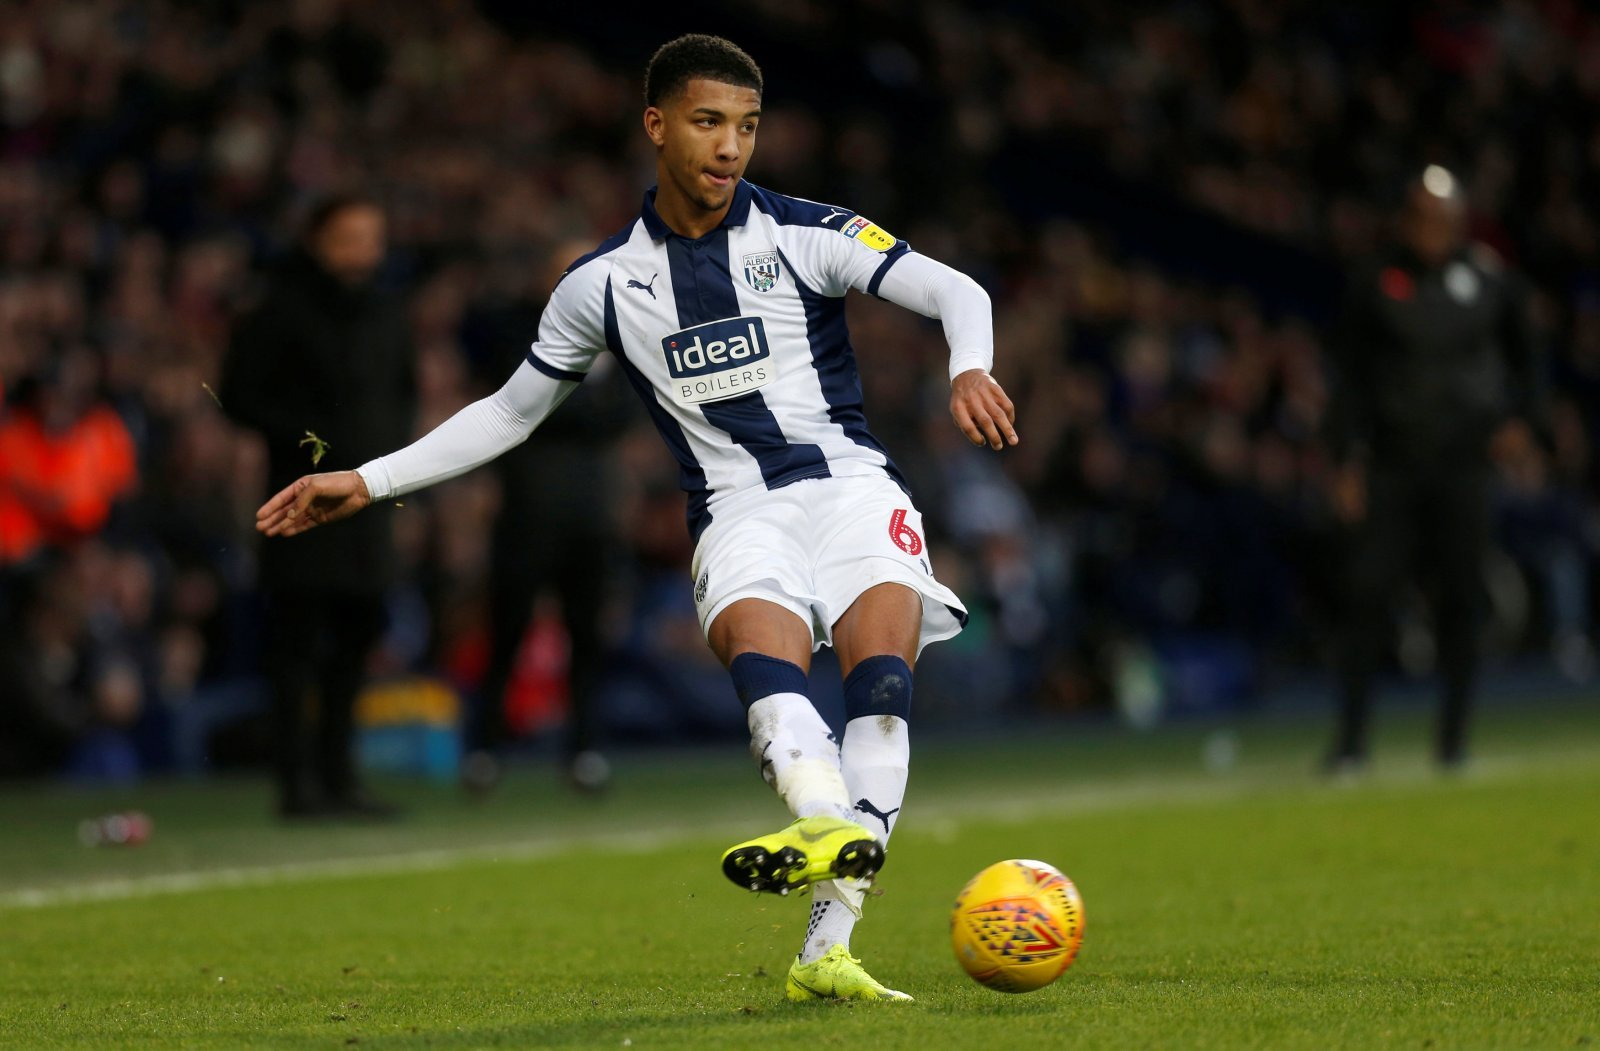 Addition of Mason Holgate looking more and more like an inspired West Brom signing